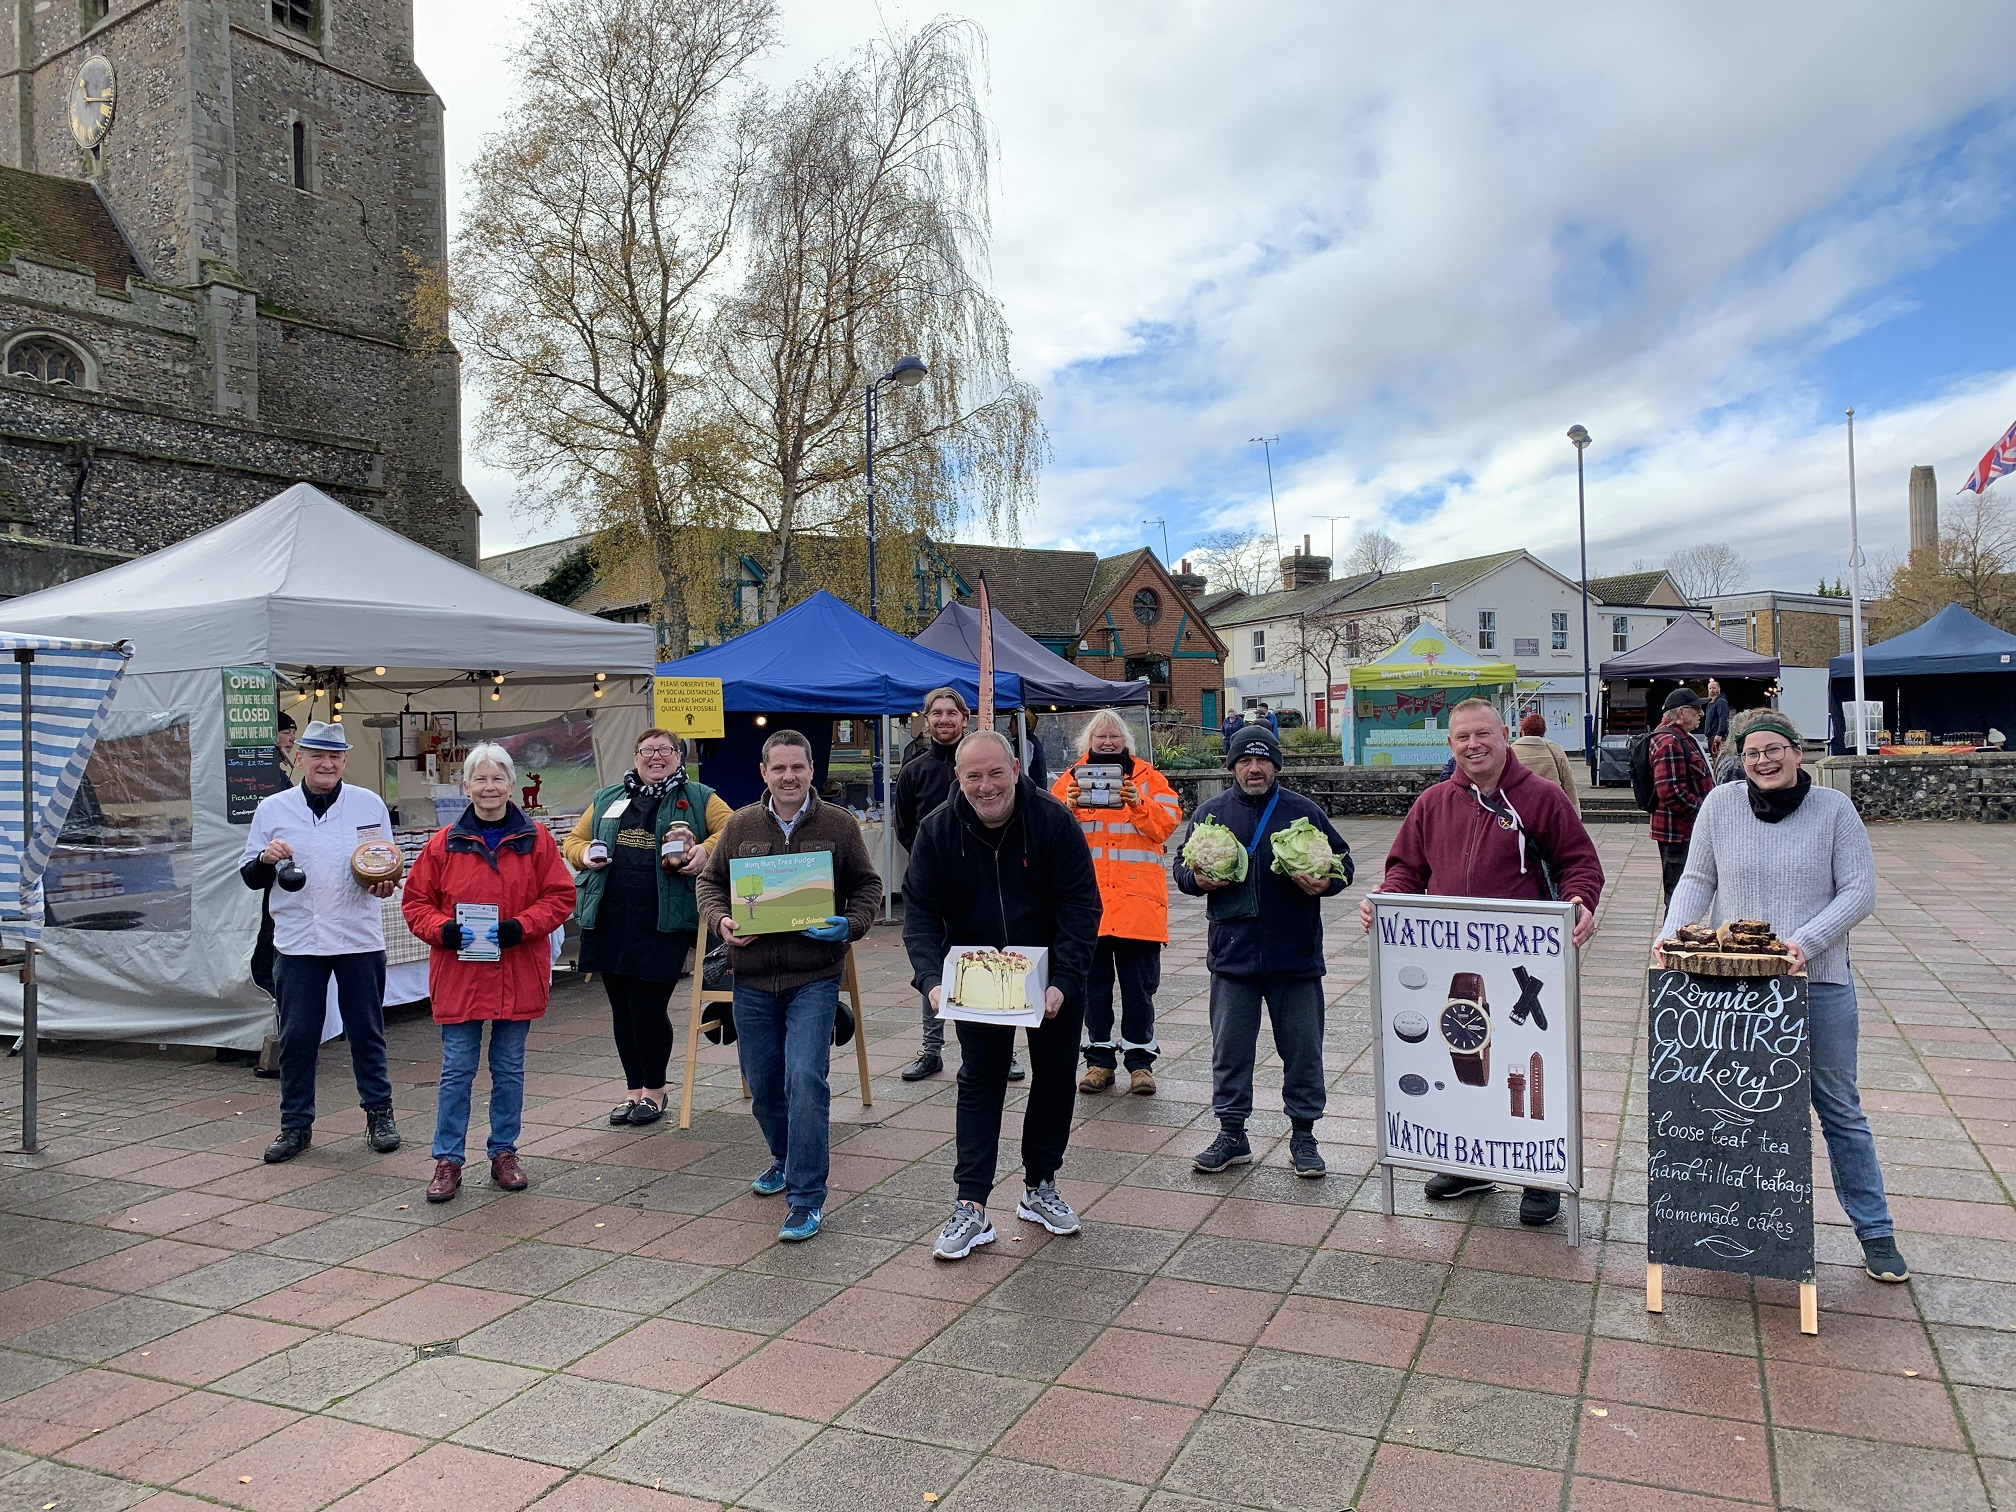 Market traders sign up for Haverhill's LoyalFree scheme